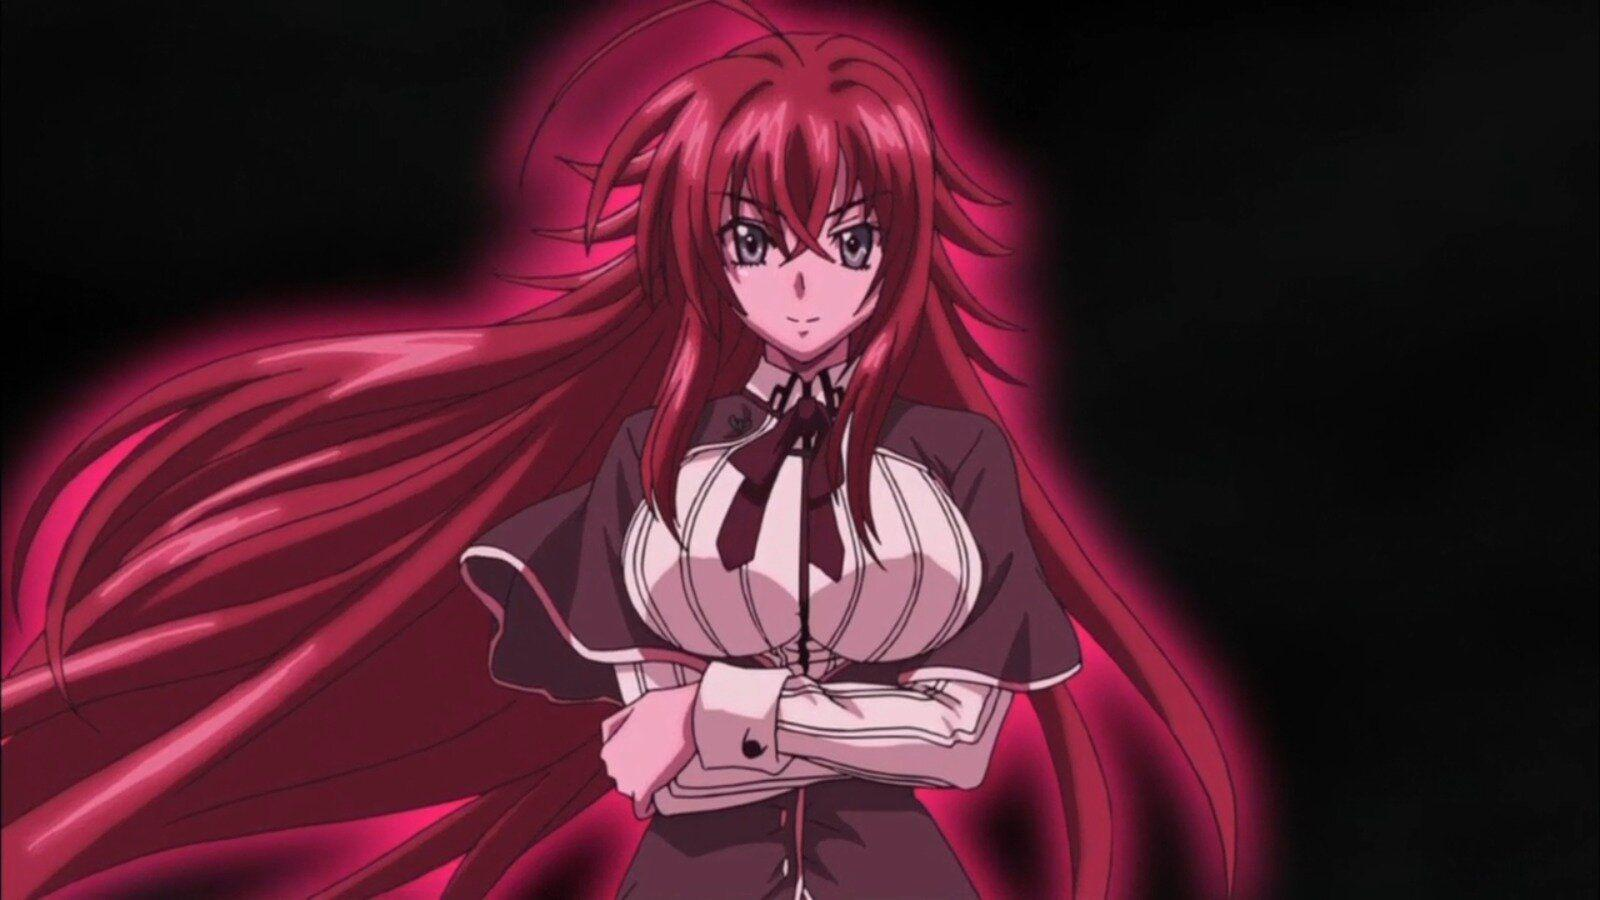 Rias Gremory Wallpapers - Wallpaper Cave